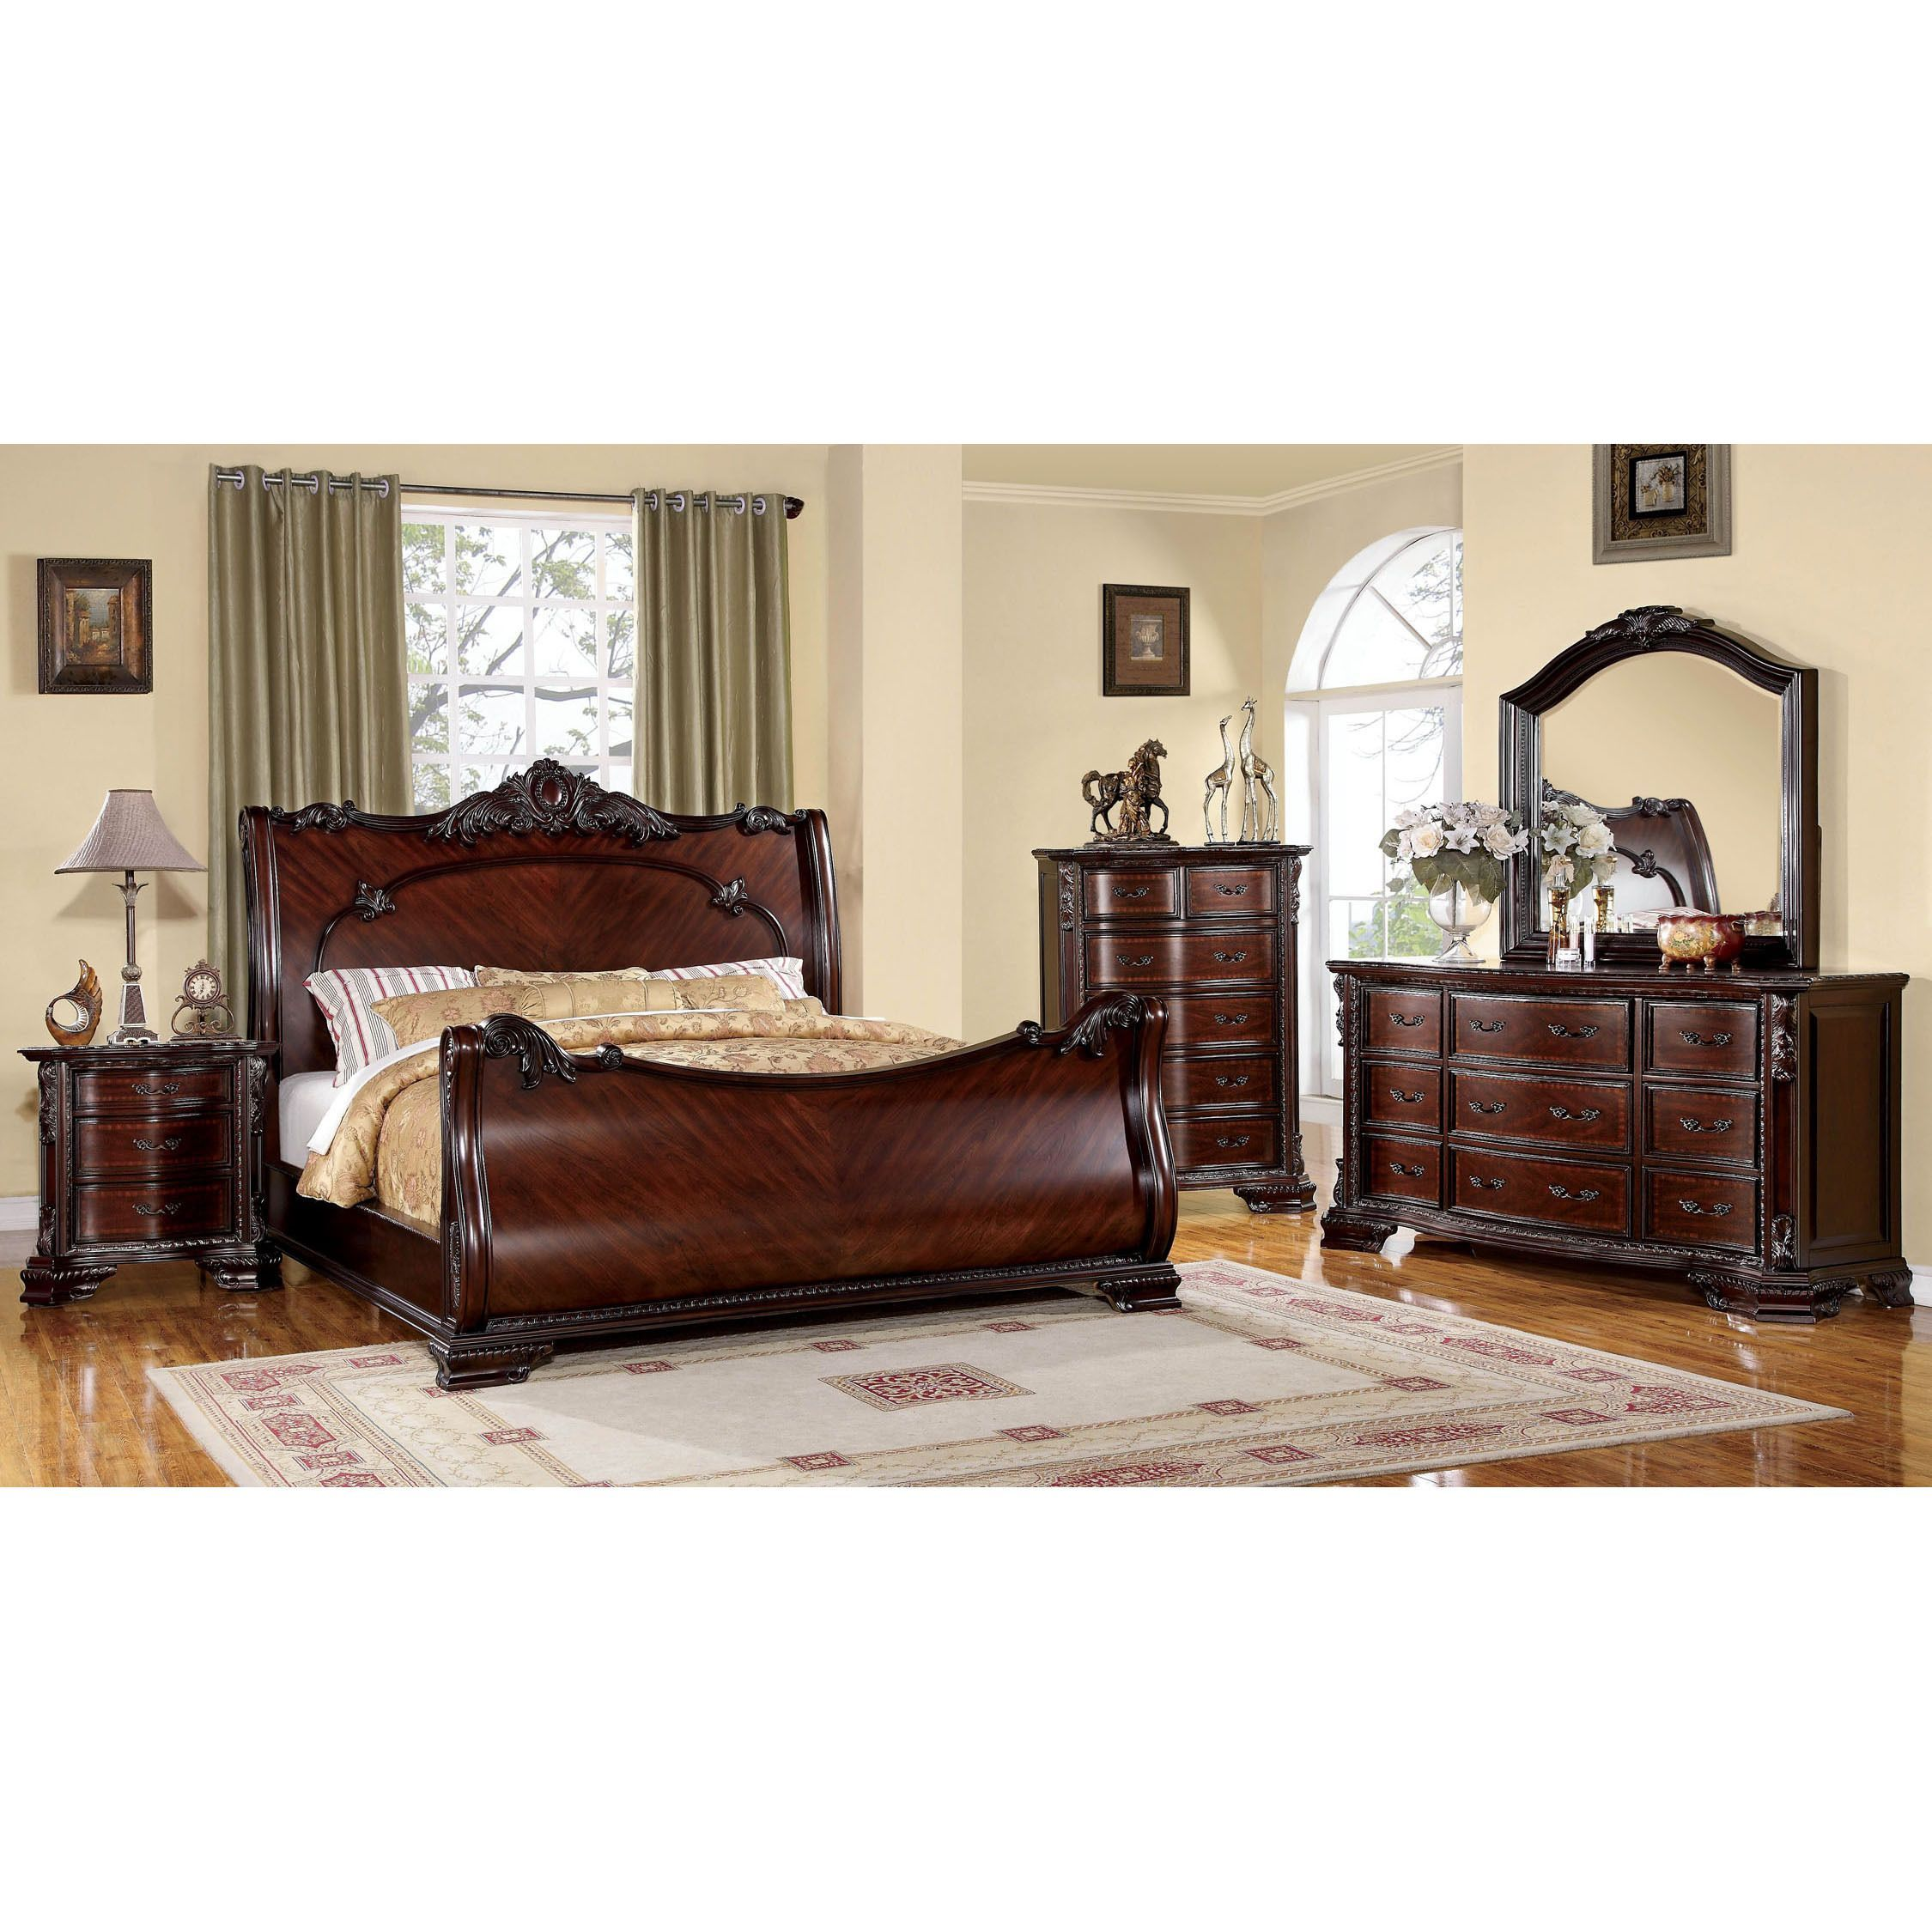 Furniture of America Luxury Brown Cherry 4-Piece Baroque ...